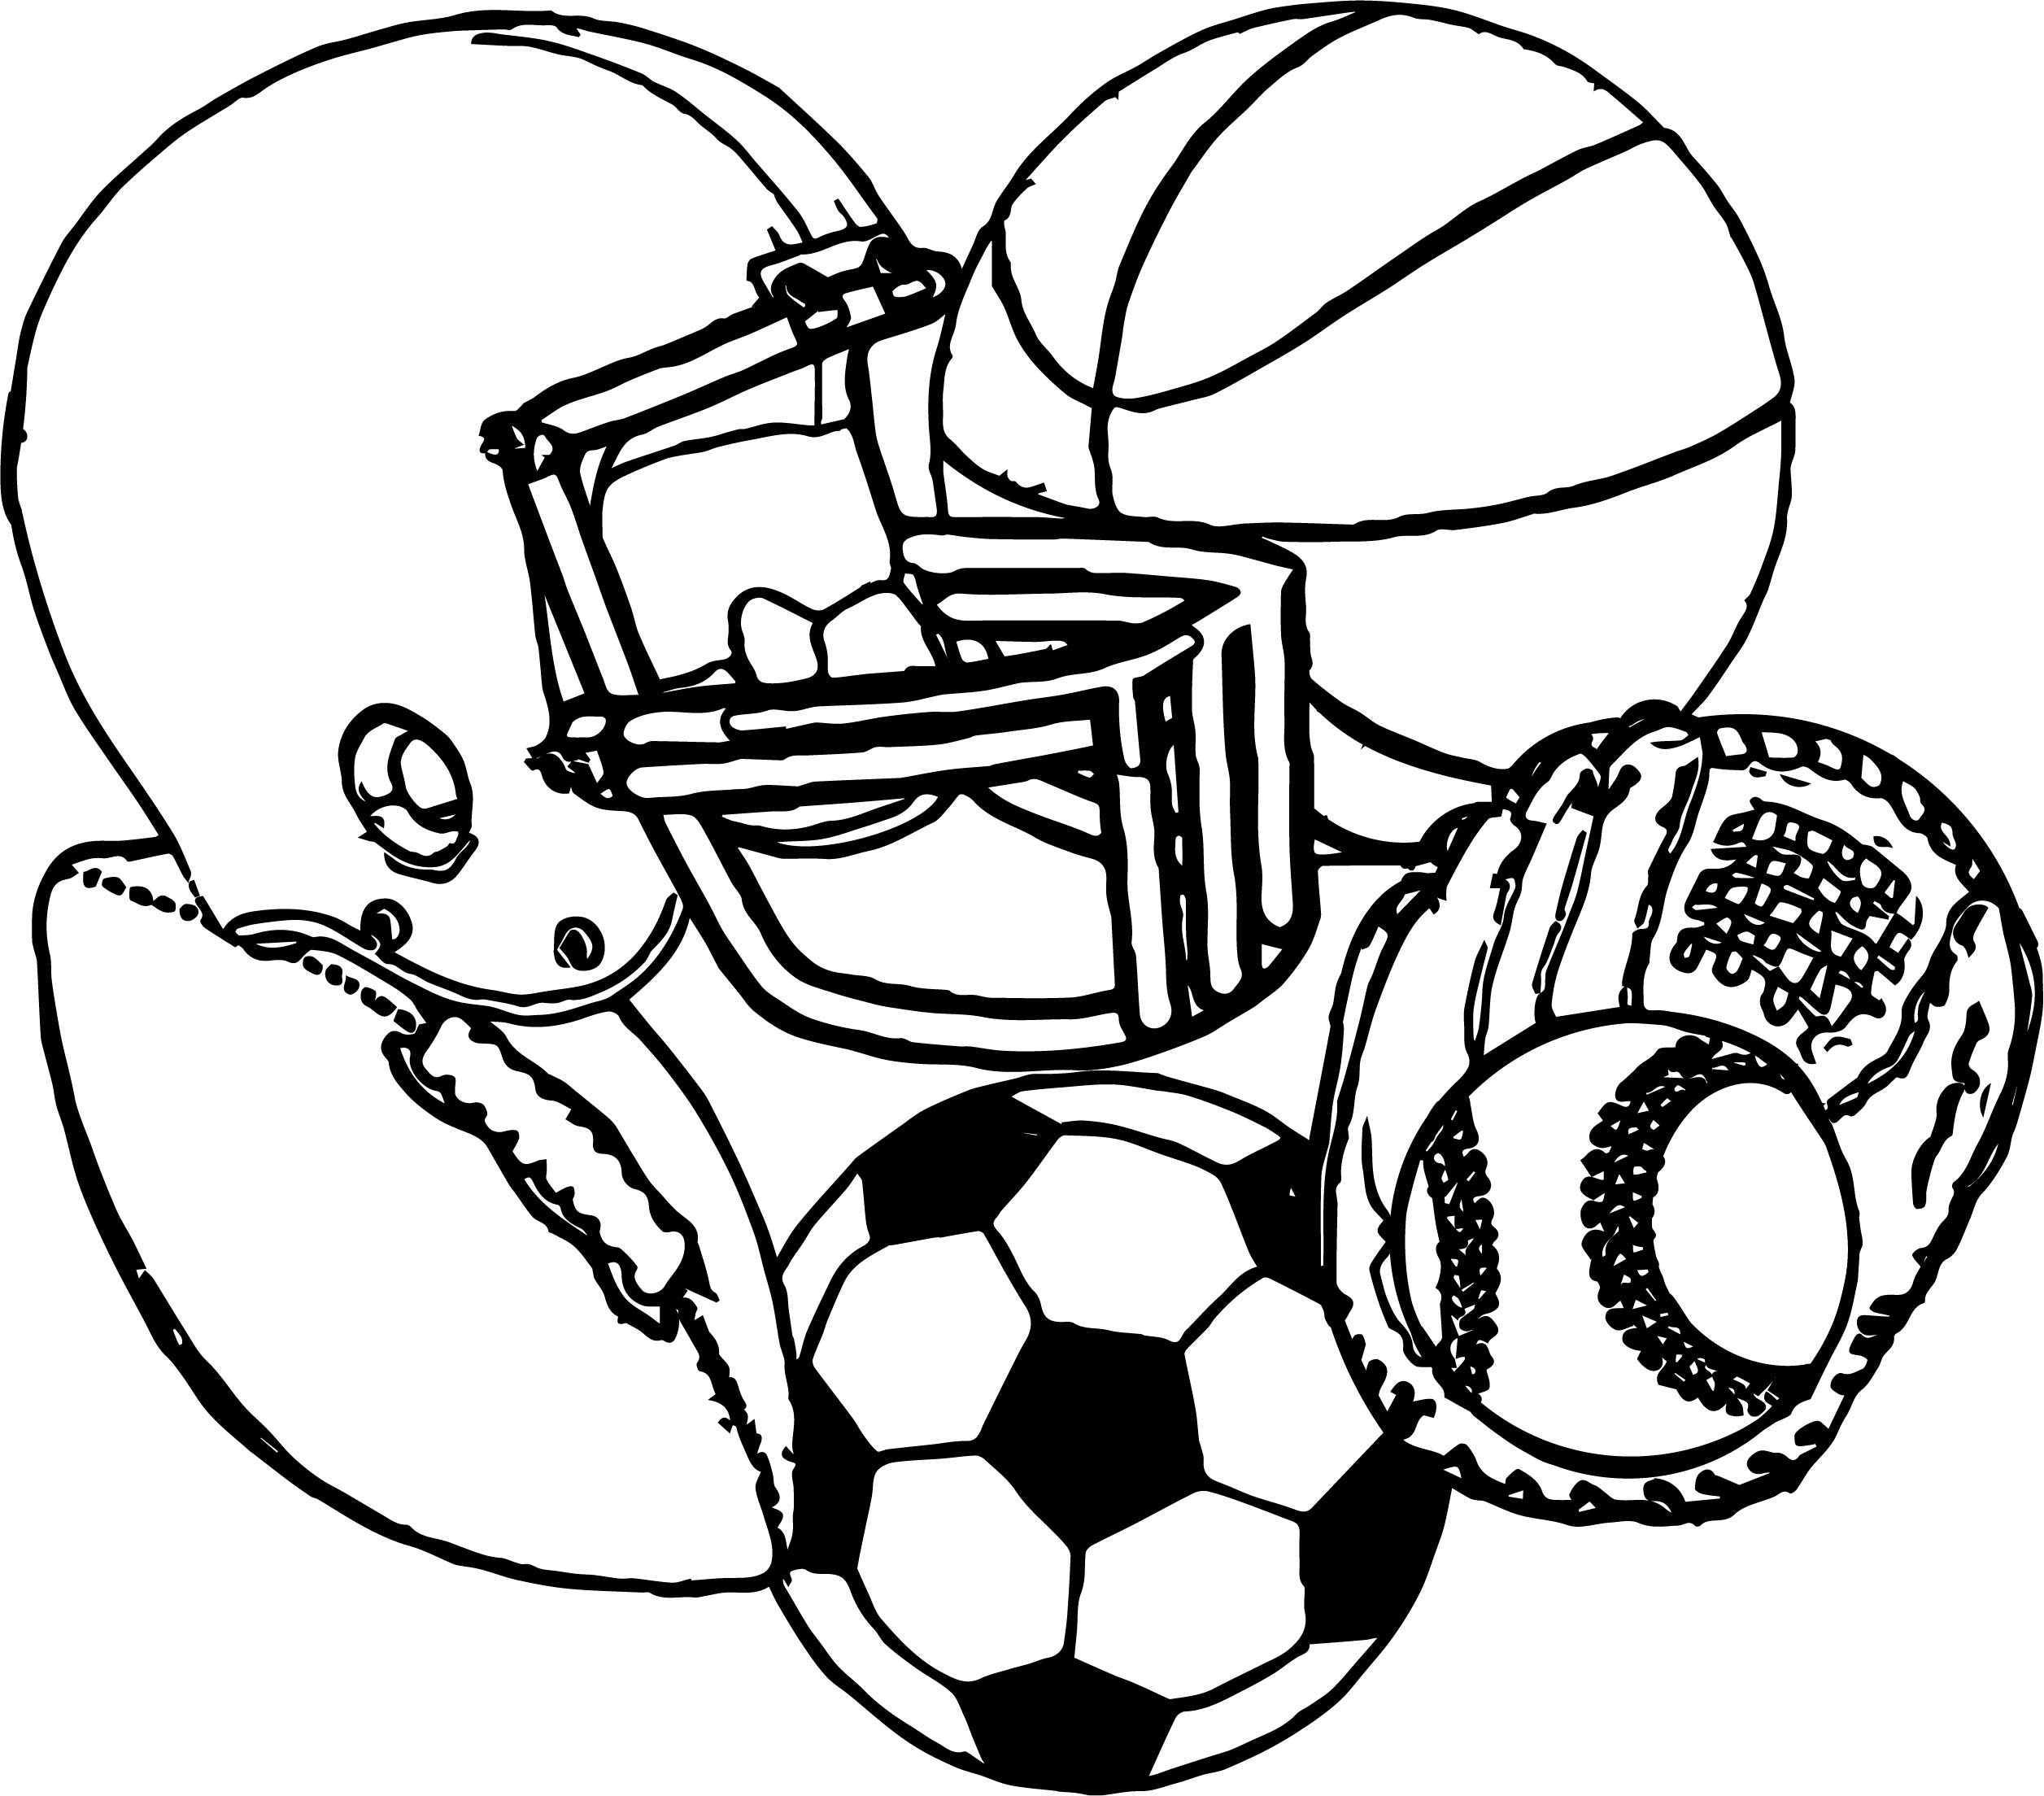 sports equipment football baseball basketball soccer coloring page. Black Bedroom Furniture Sets. Home Design Ideas